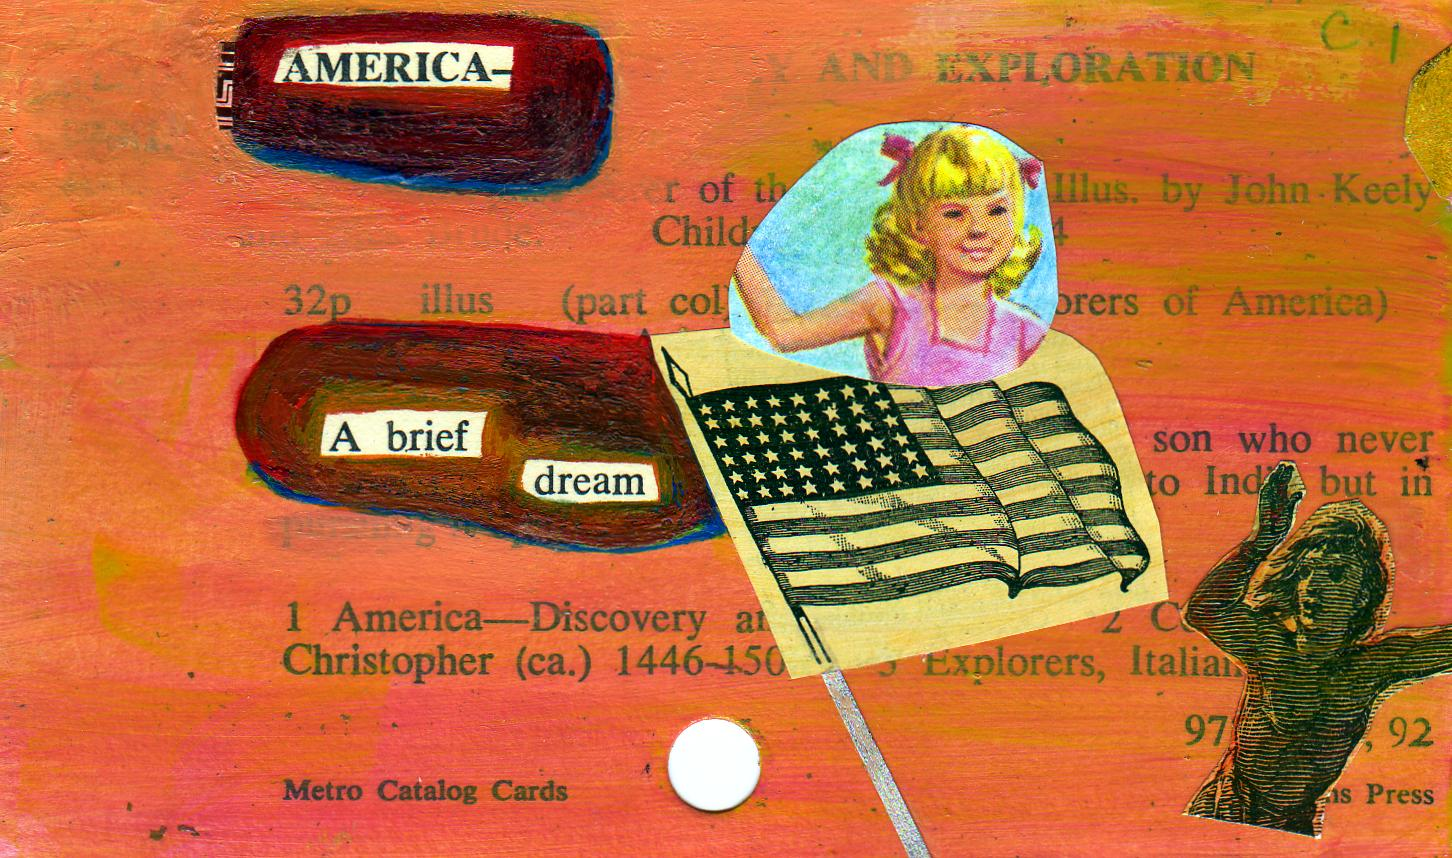 America-brief dream297.jpg